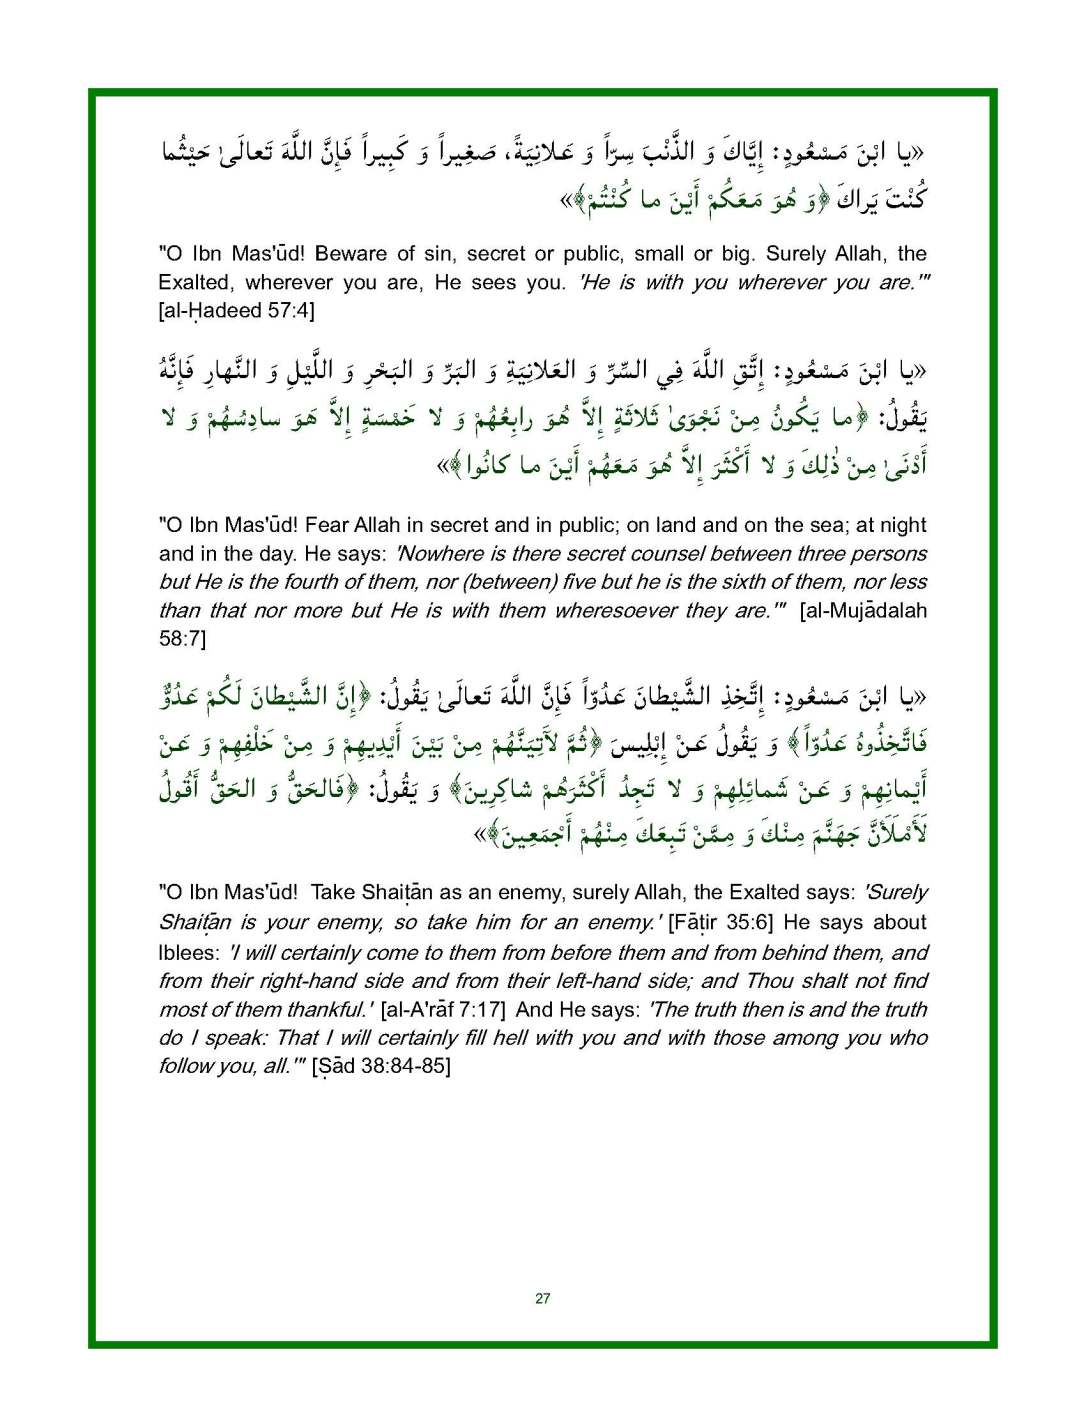 Spiritual-Advice-of-the-Messenger-of-Allah-for-Ibn-Masud-unlocked_Page_27